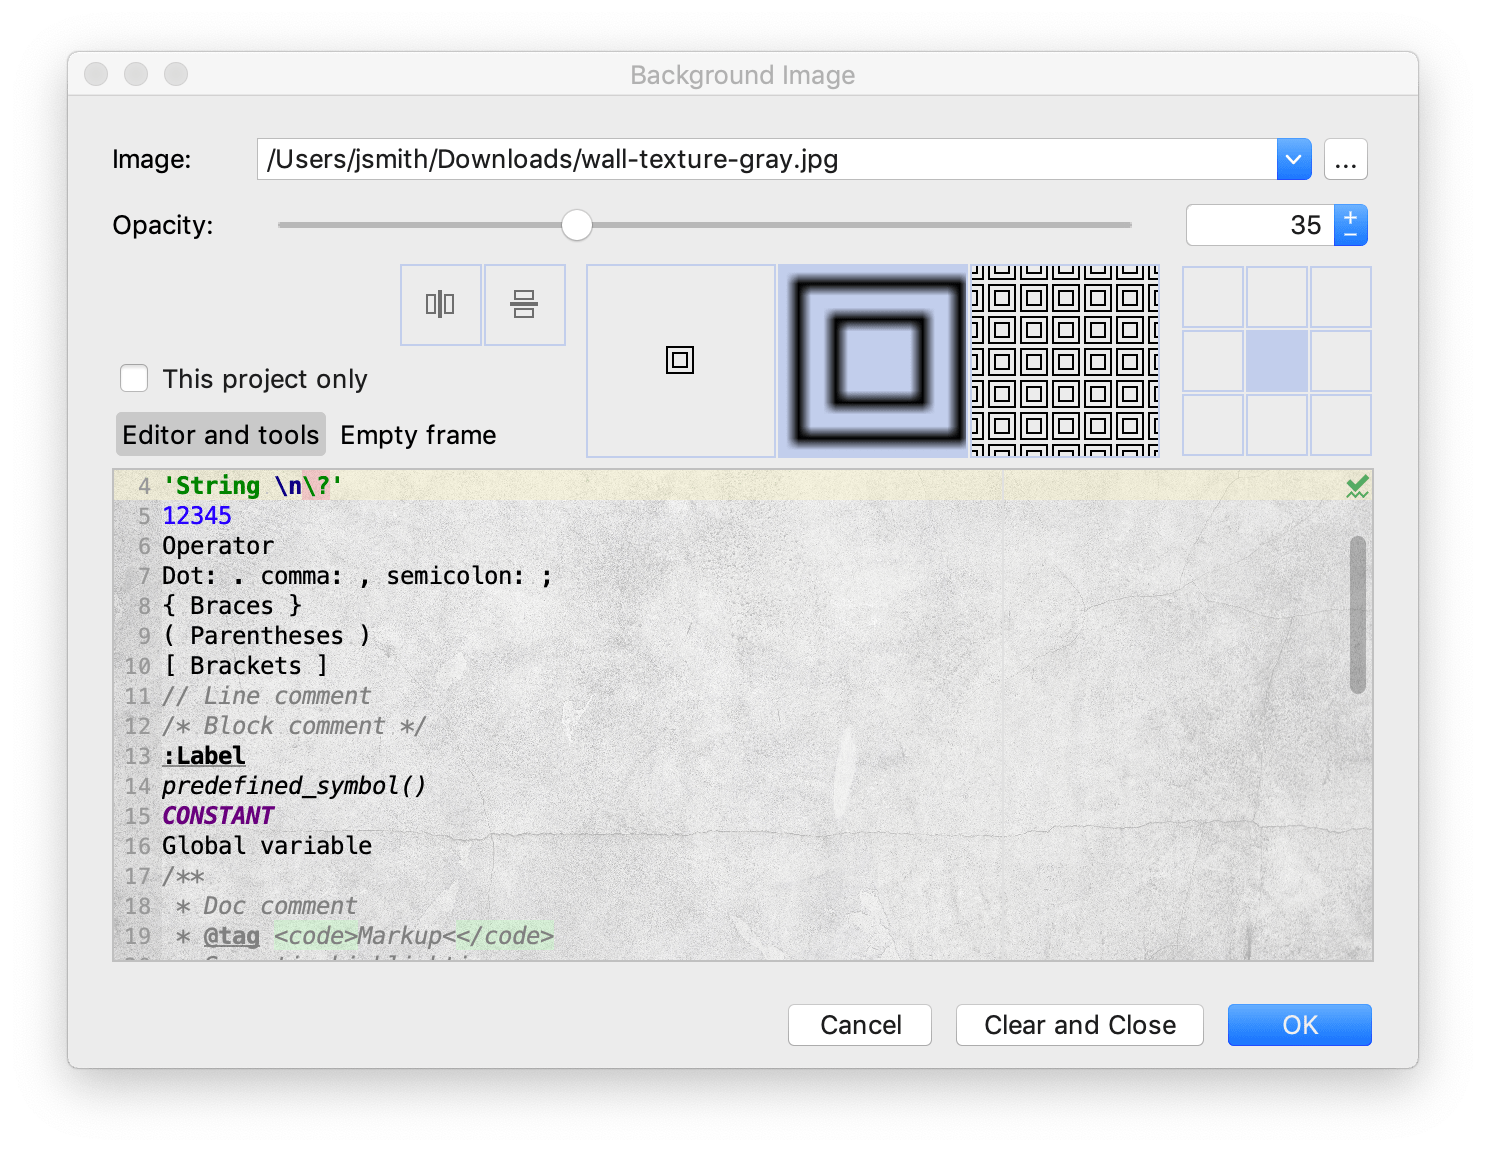 The Background Image dialog